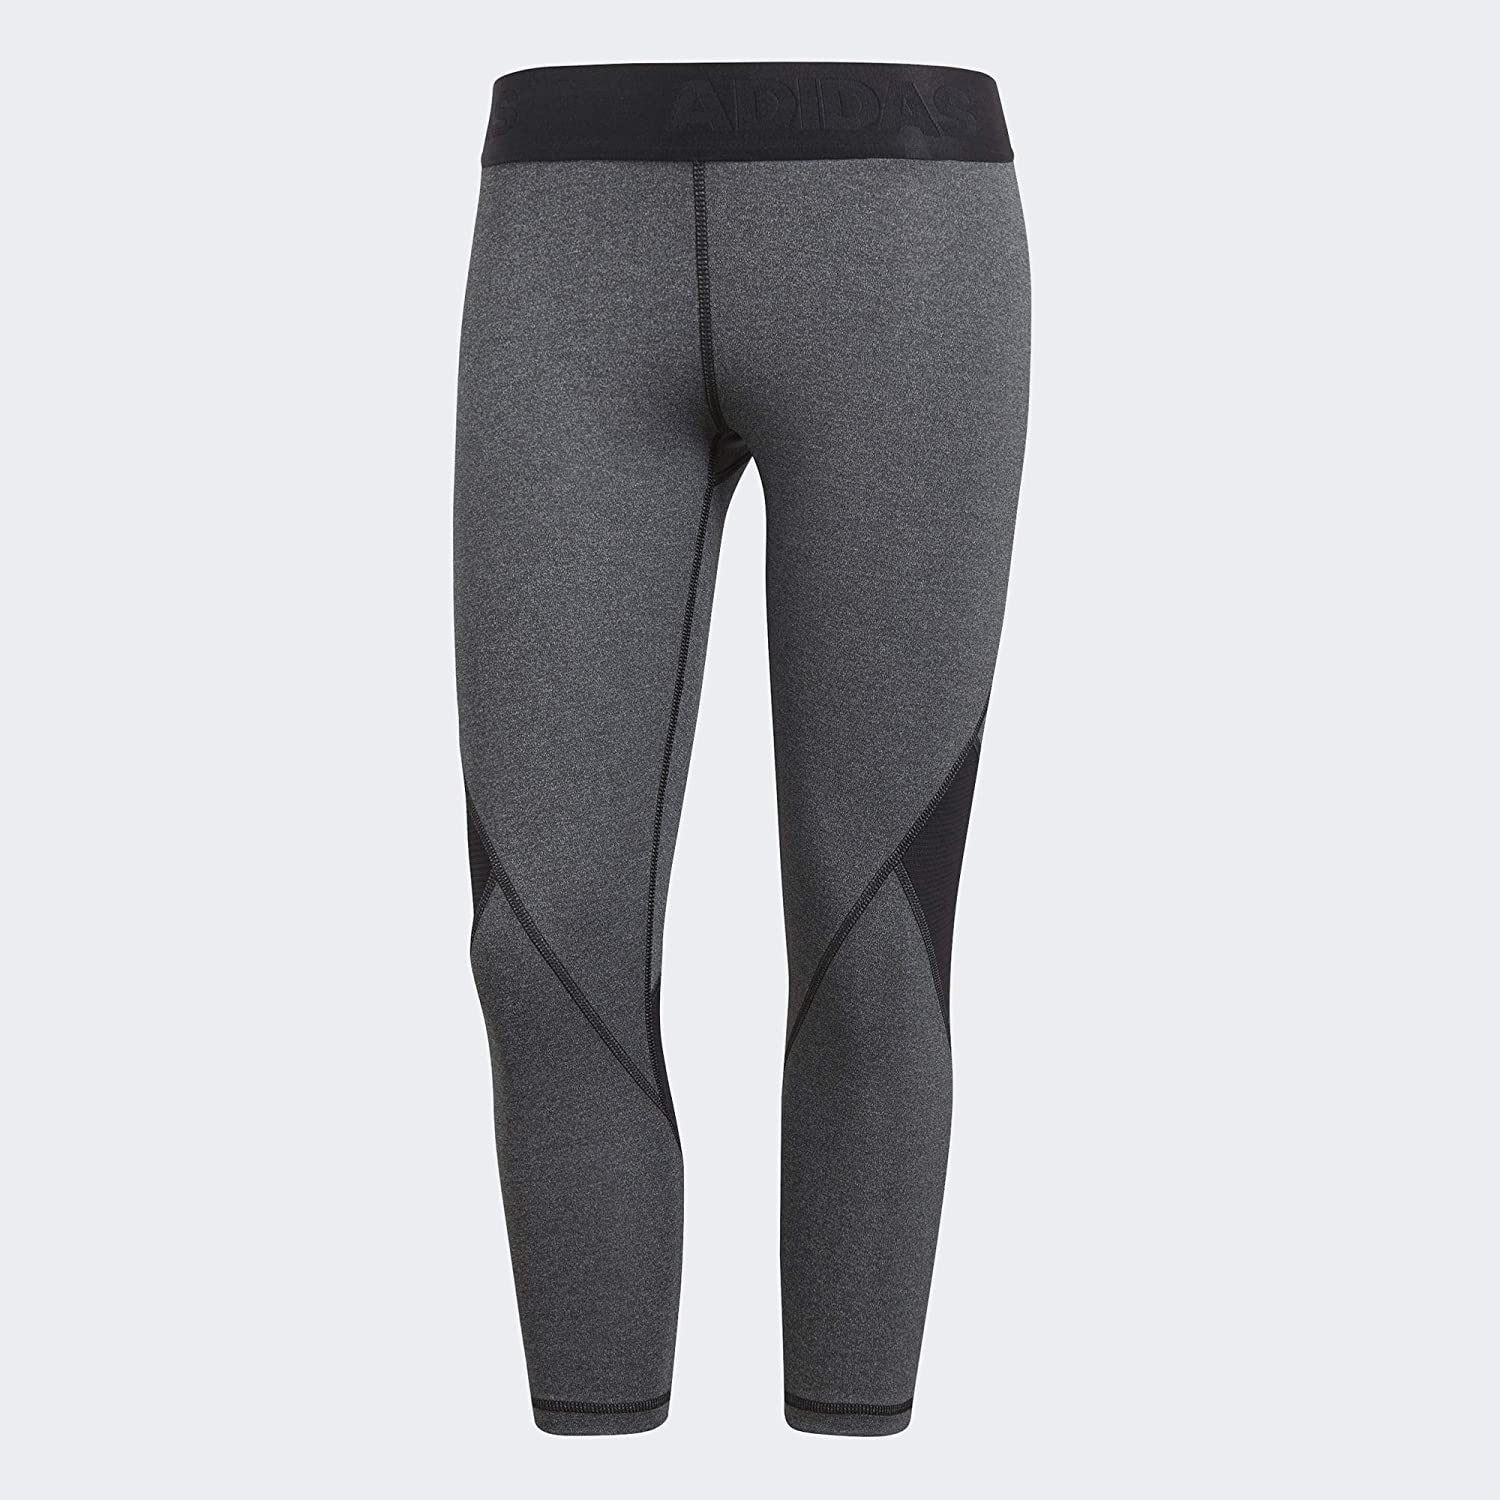 3e129bce Amazon.com : adidas Women's Alphaskin Sport 3/4 Length Tight : Clothing